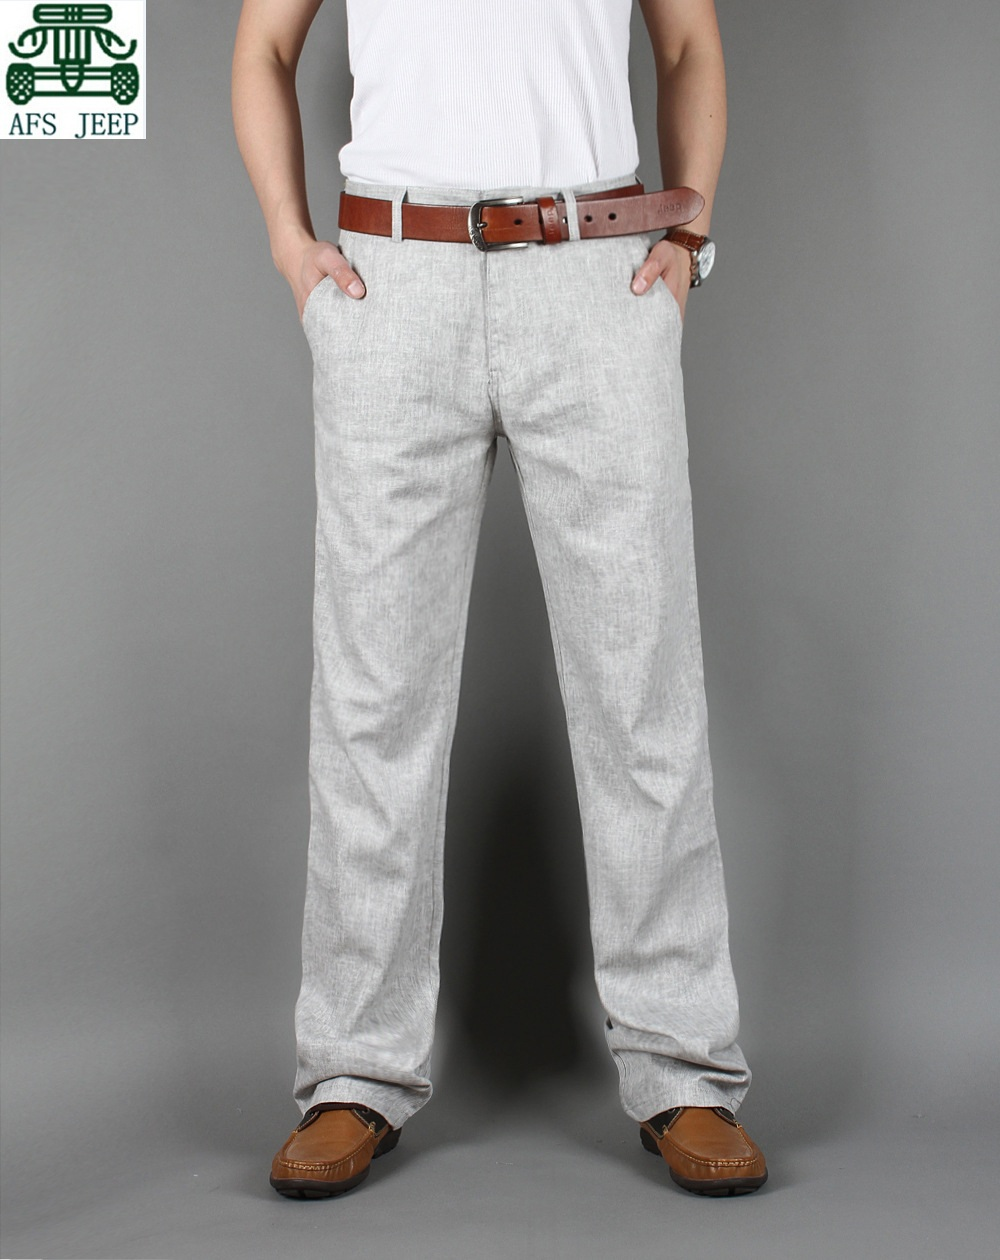 AFS JEEP New Arrival Mans Light Gray/Dark Gray Linen Style Summer Loose Mens Breathe Casual Big Size Pants Одежда и ак�е��уары<br><br><br>Aliexpress